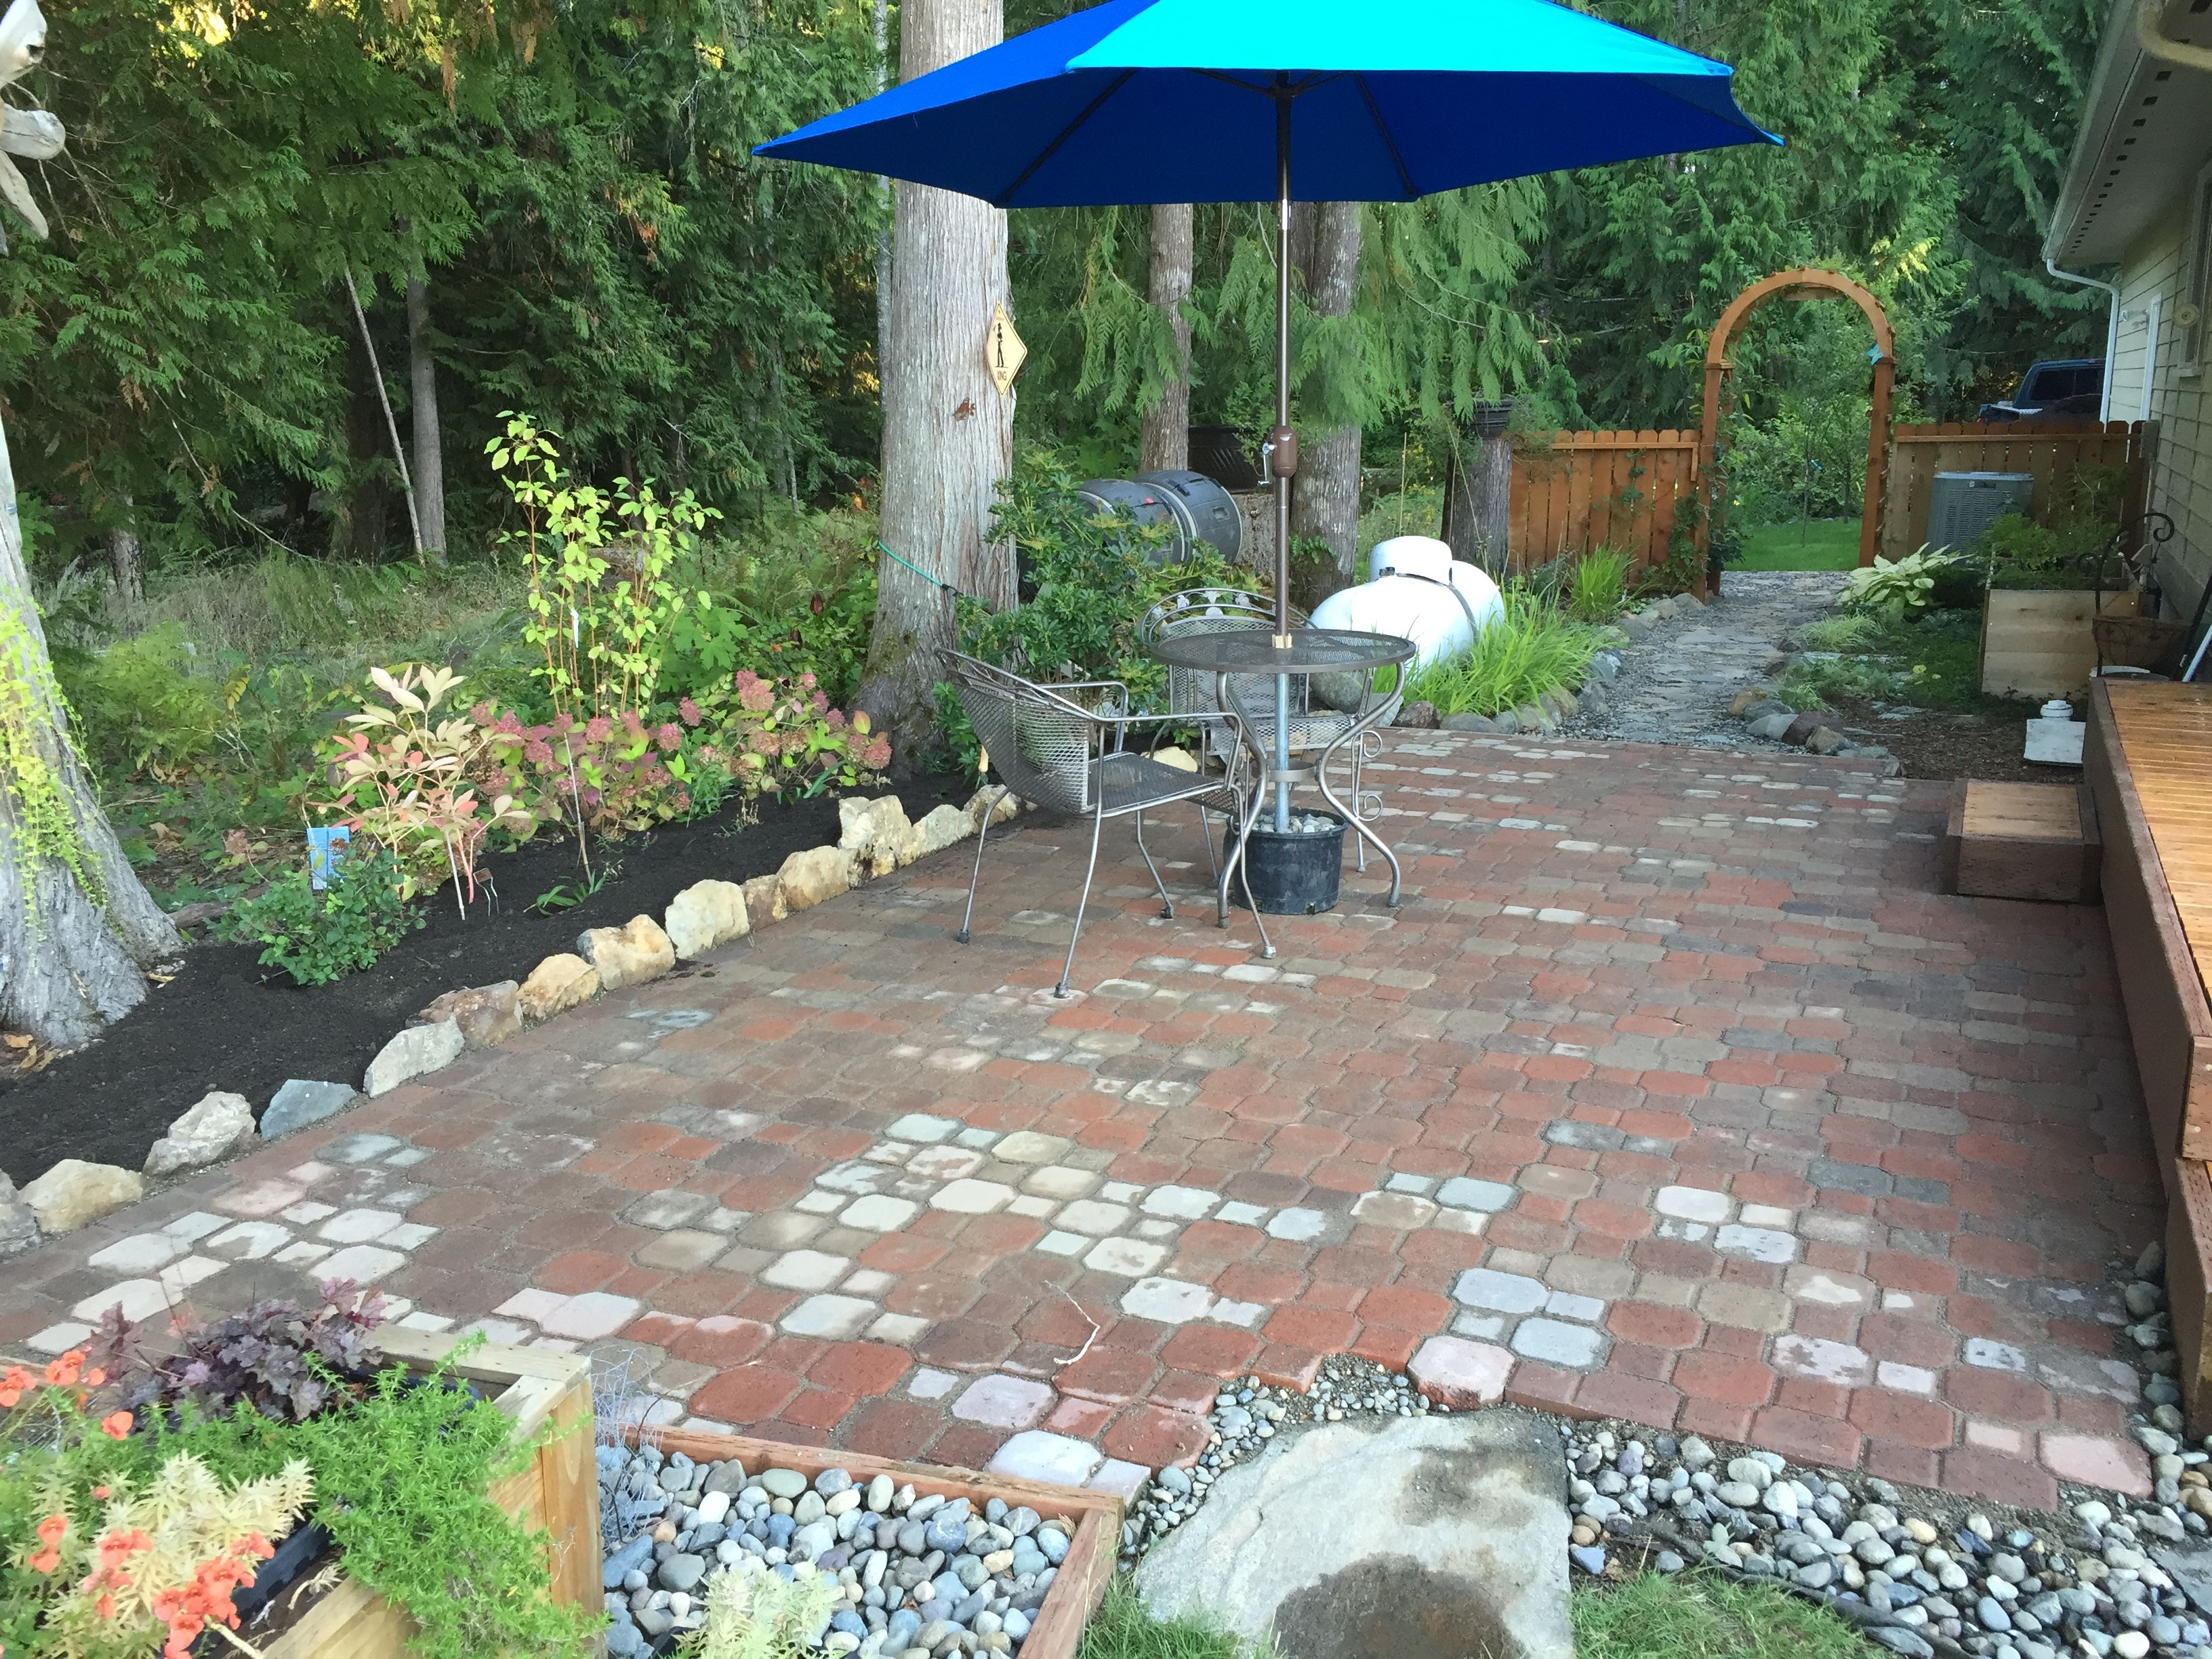 completed brick aug 2015 bricksgarden - Brick Garden 2015